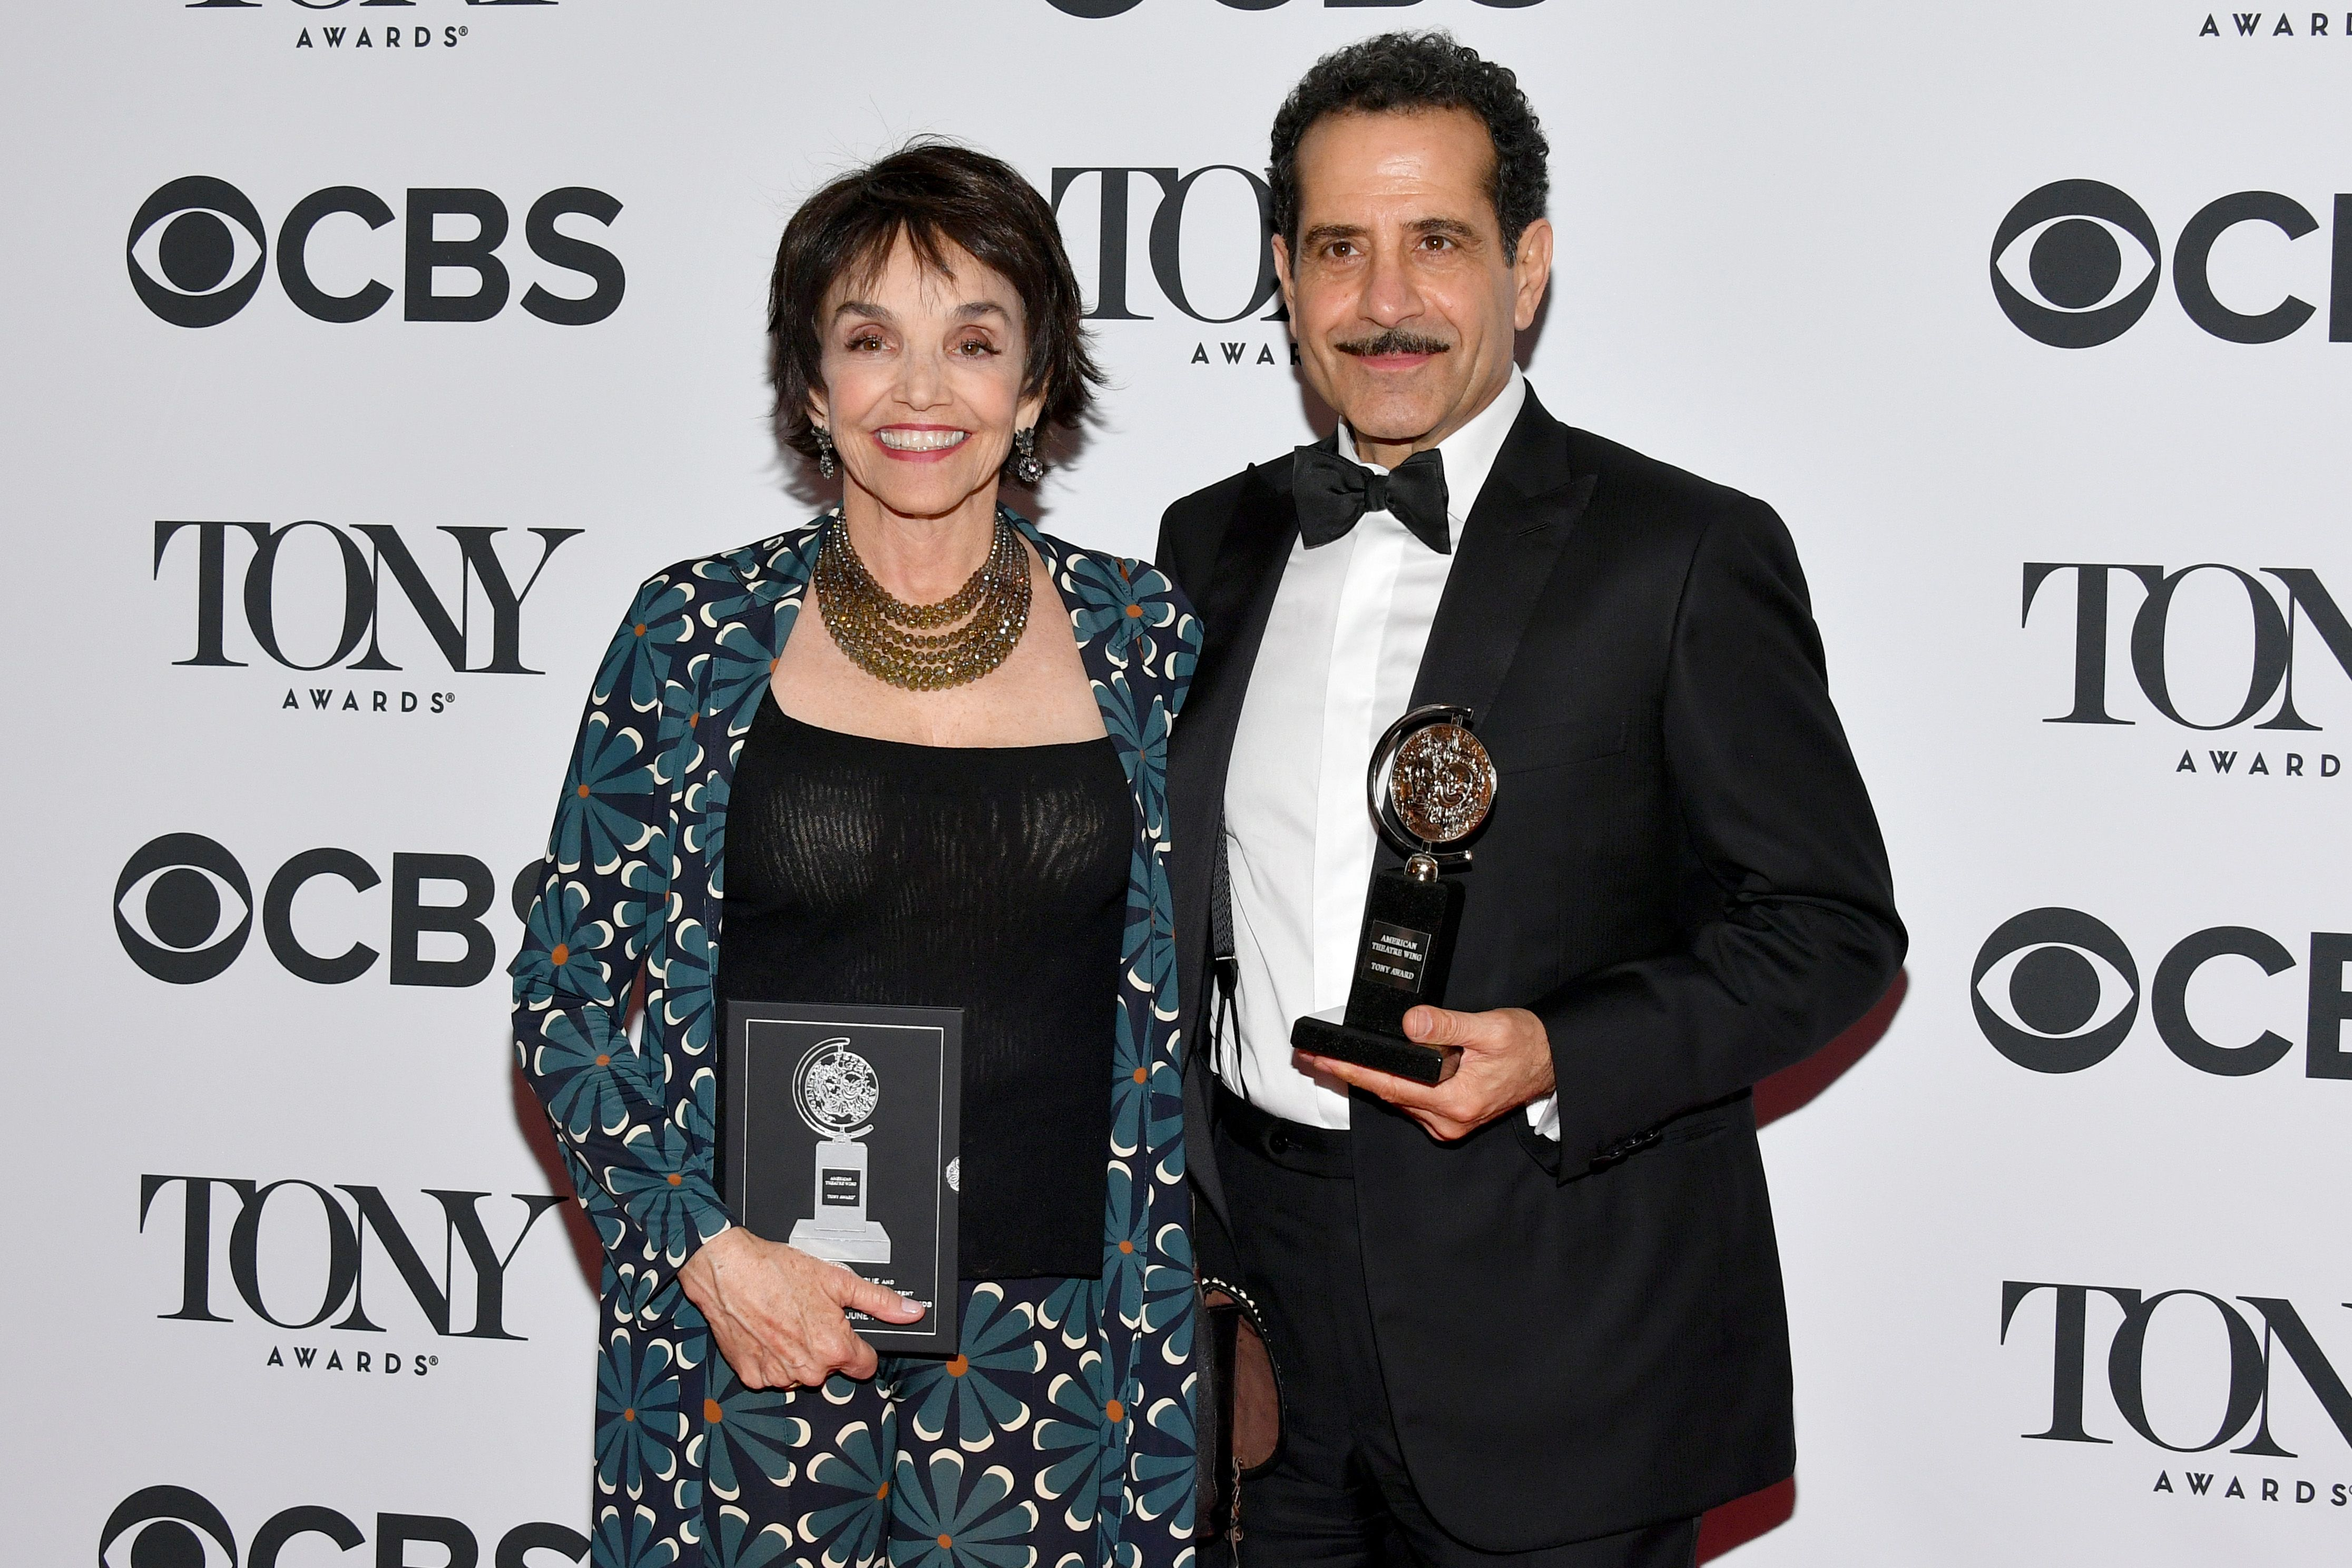 Brooke Adams and Tony Shalhoub at the 72nd Annual Tony Awards in 2018 in New York City | Source: Getty Images